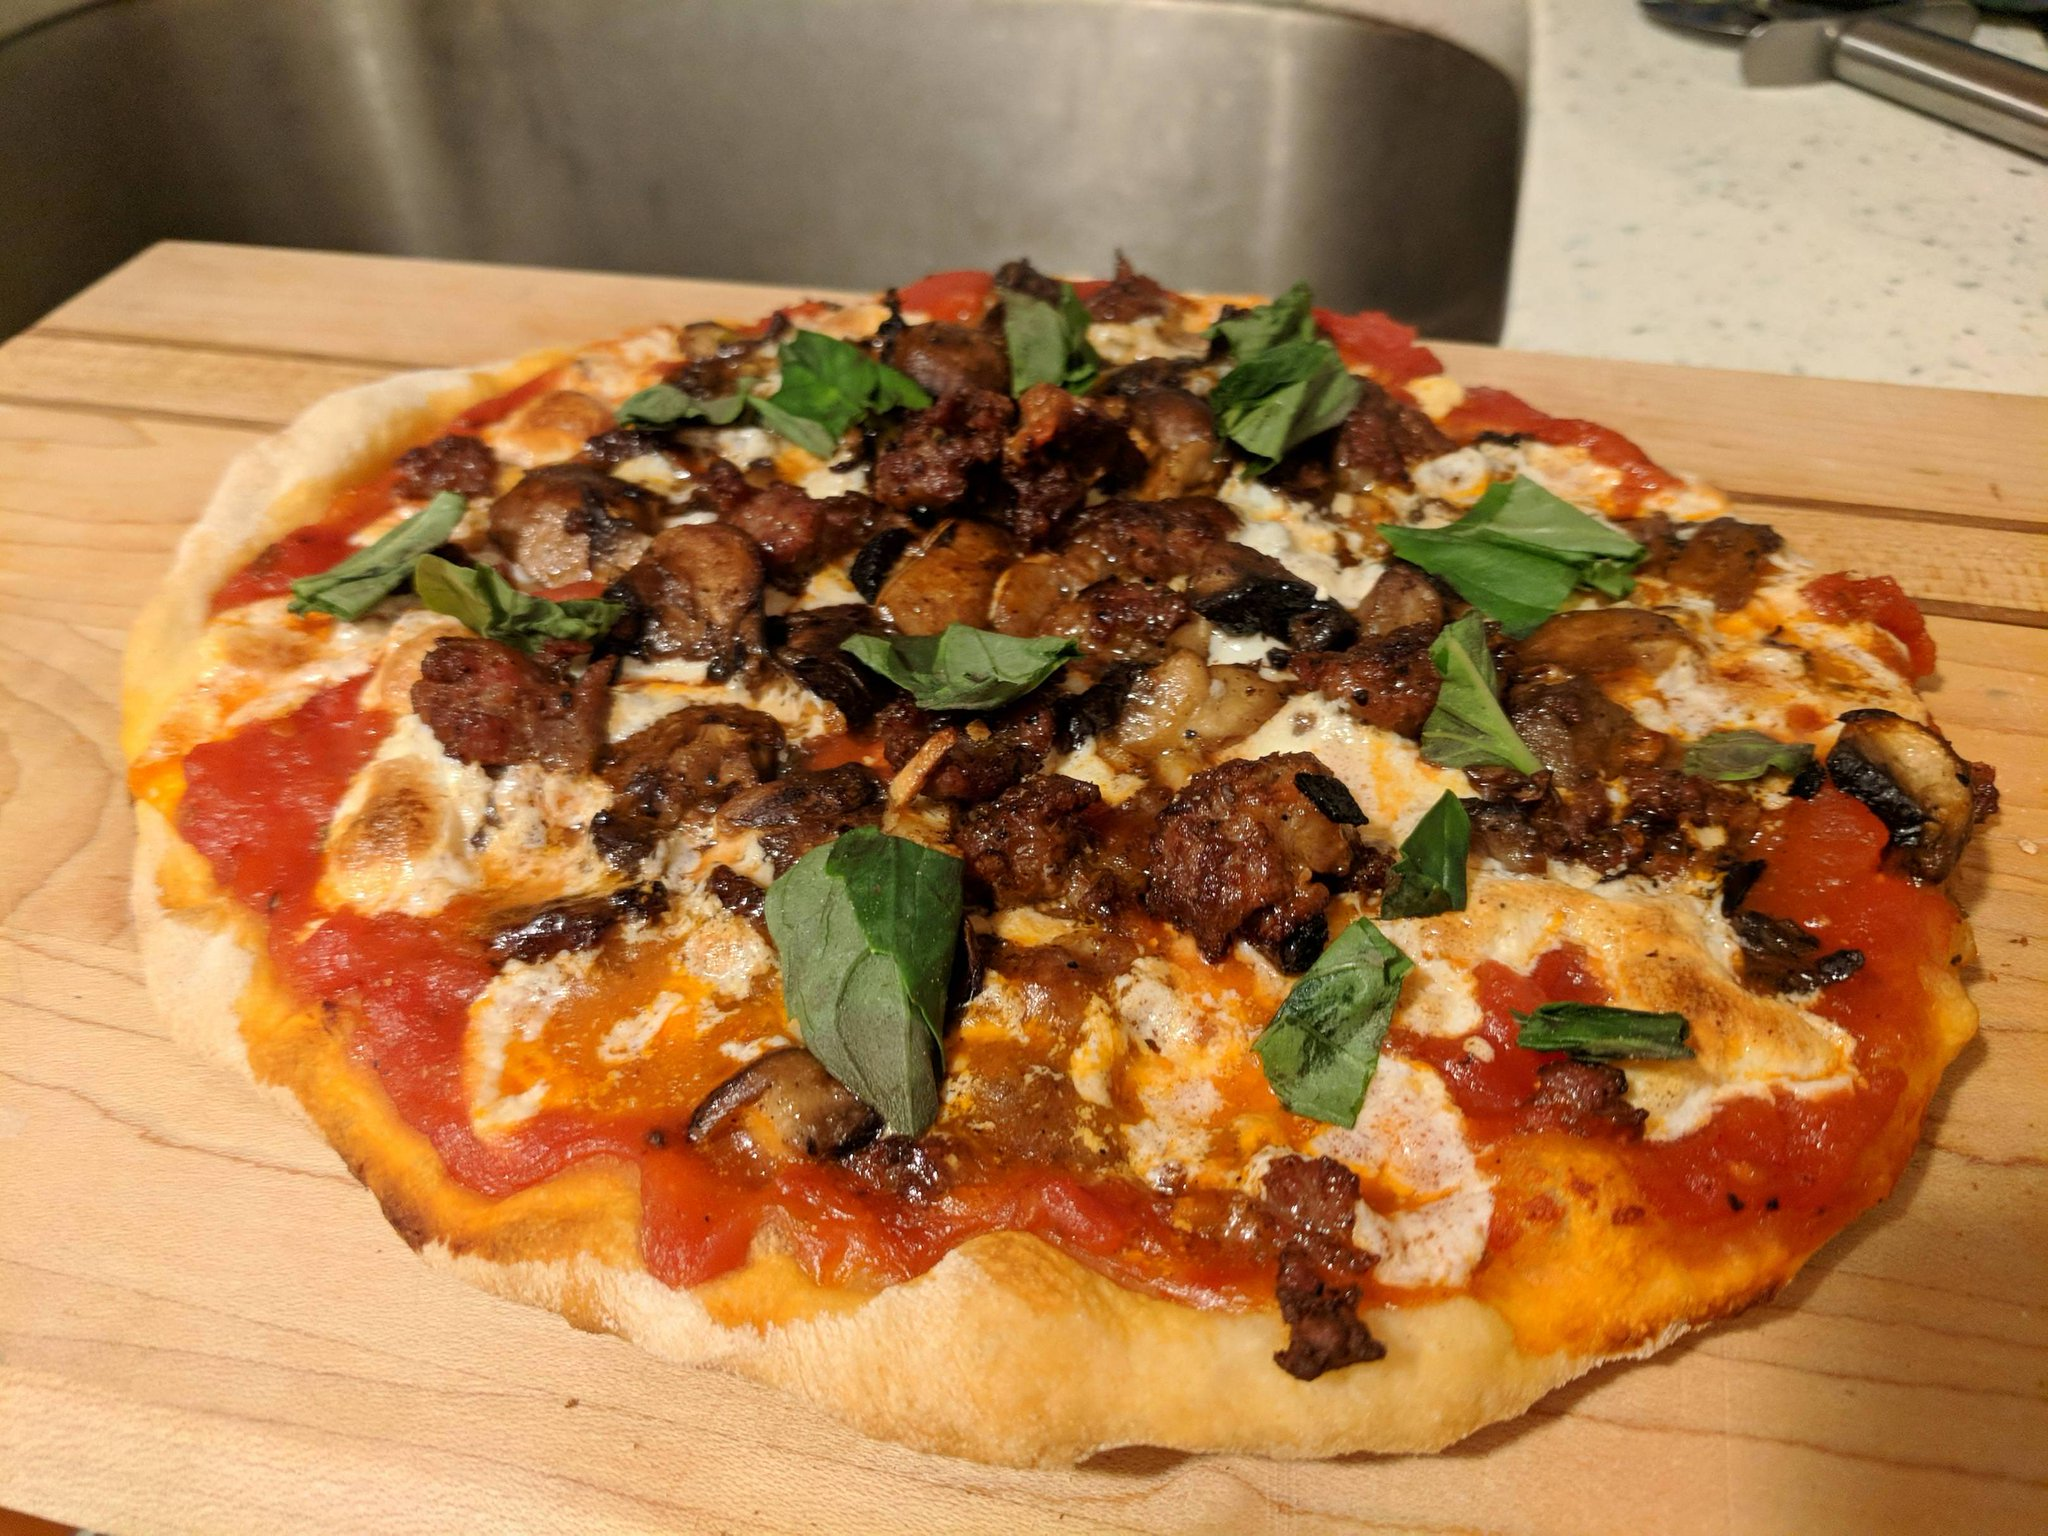 #Monday's #are #for #Mushrooms #& #Sausage https://t.co/v5AuogoXlO  #shitgotdeep,#pizza https://t.co/UuwV749DHN